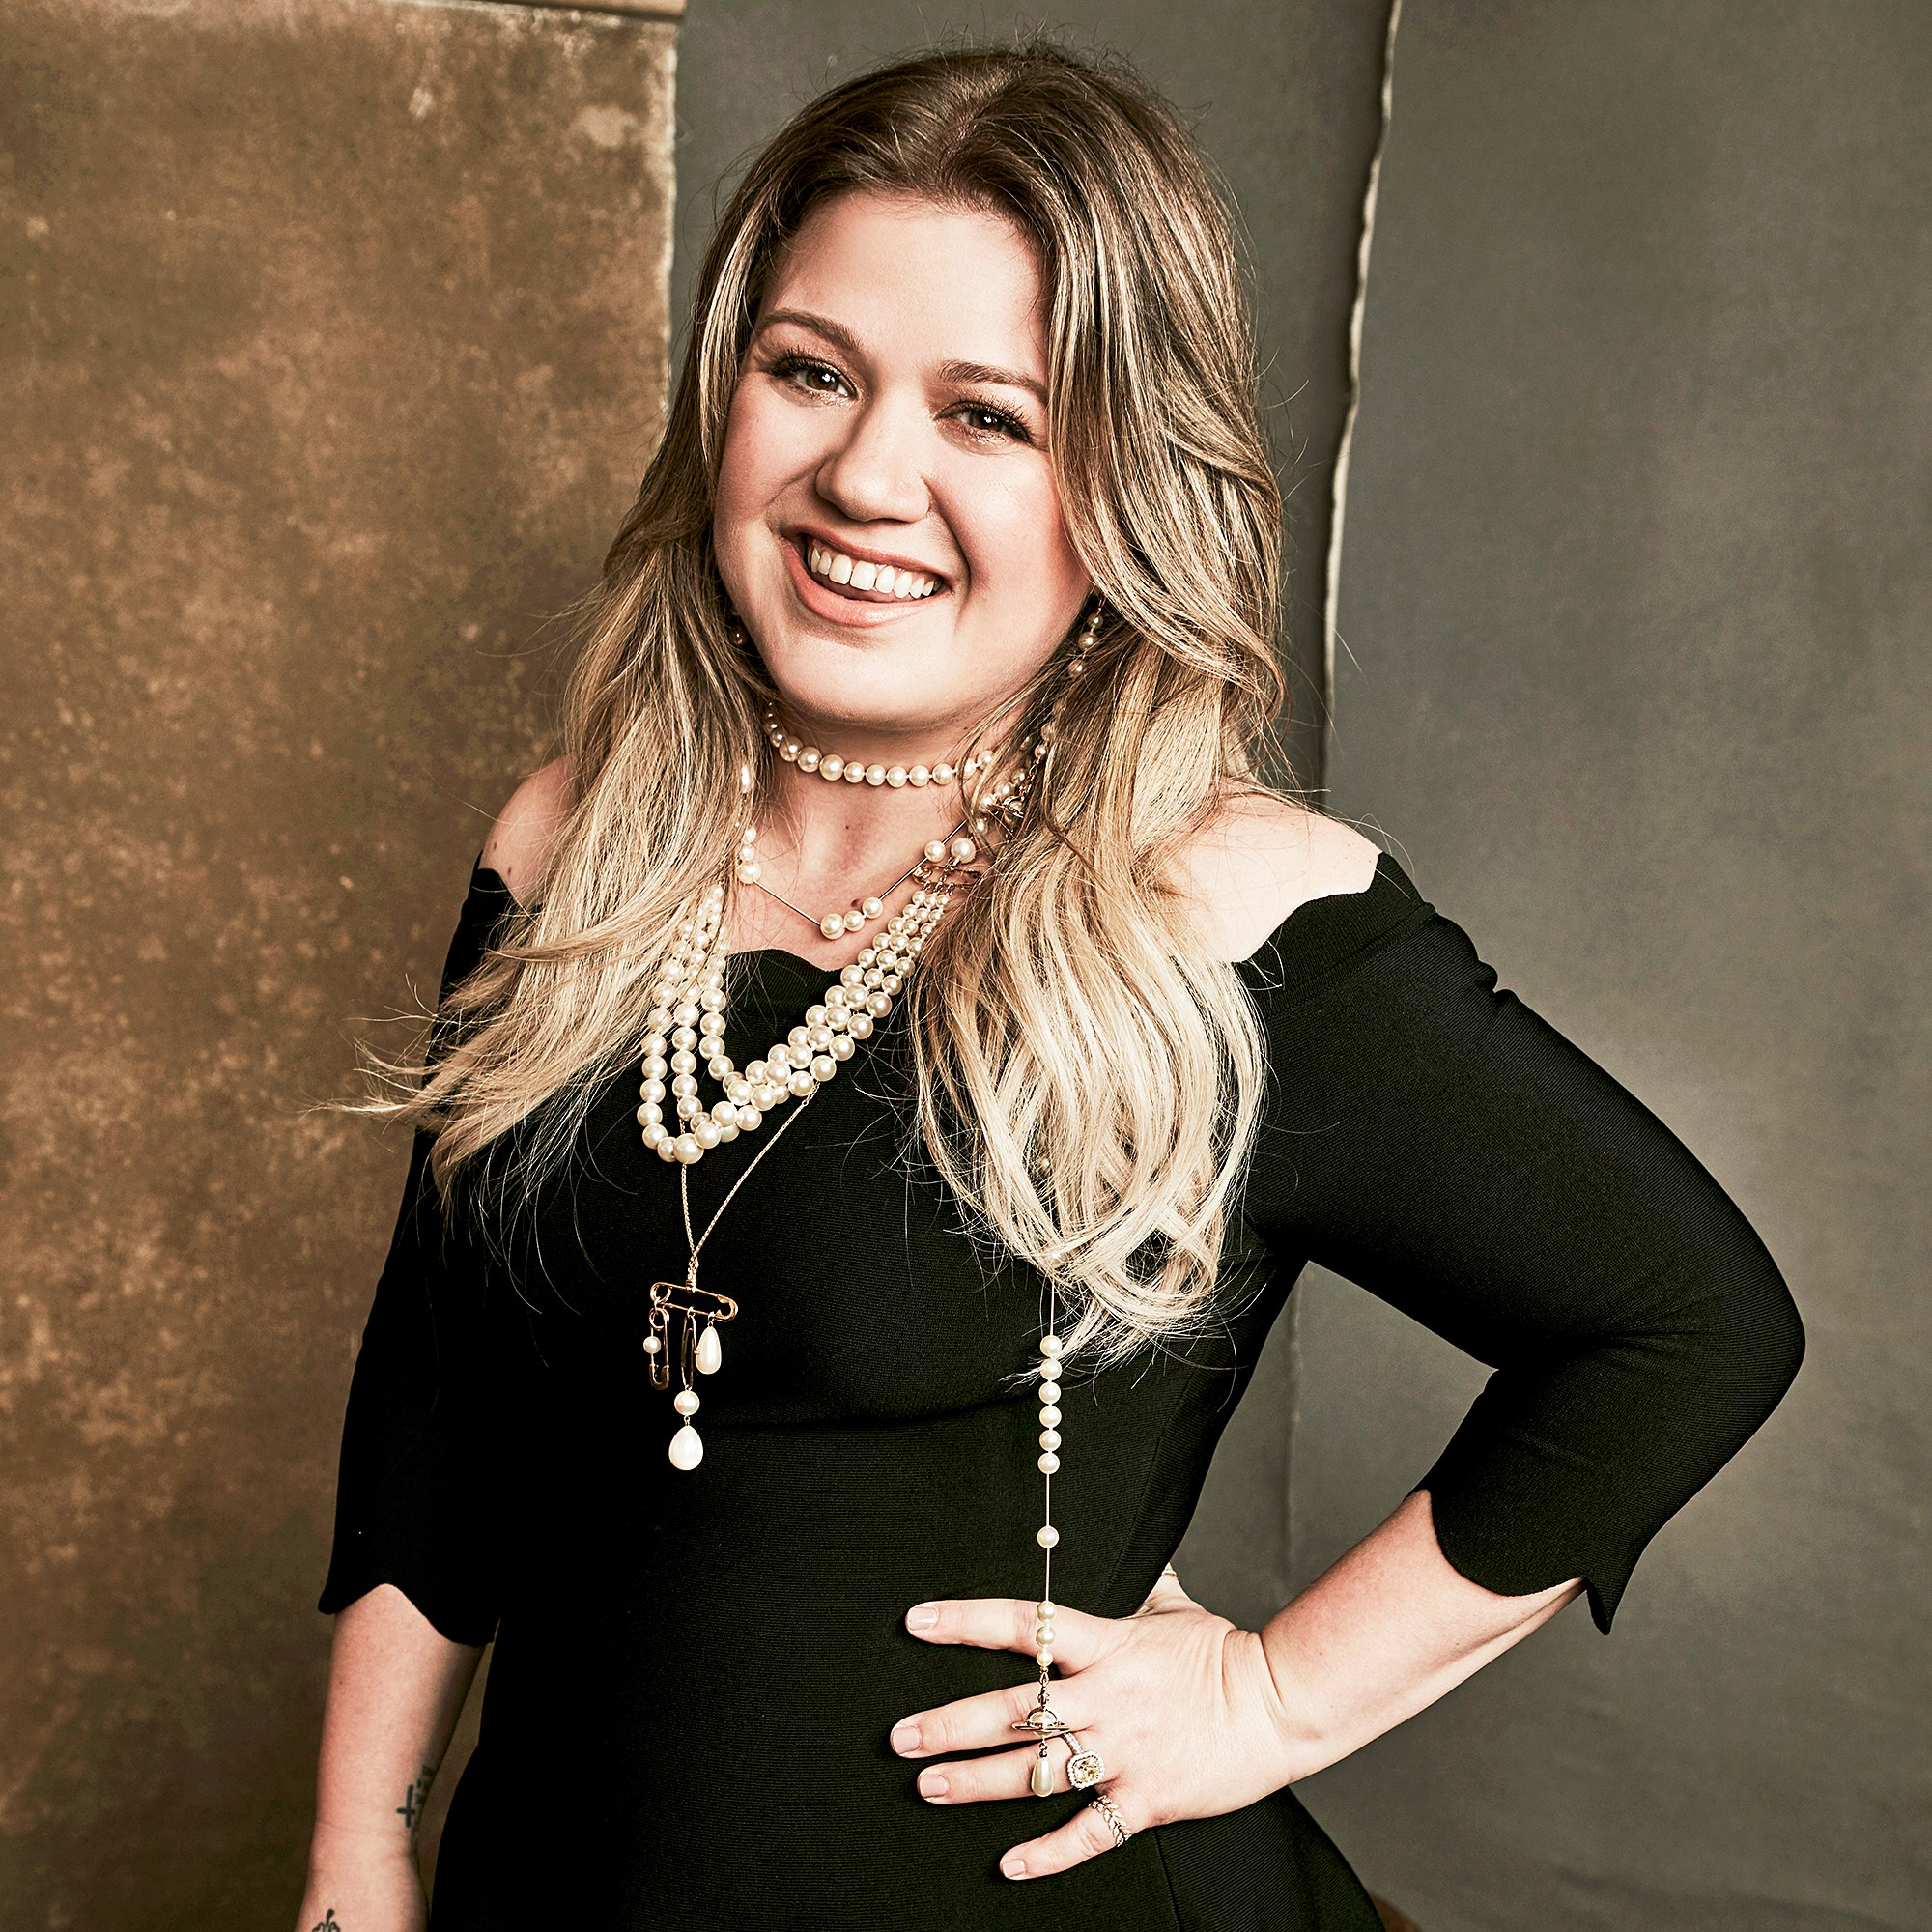 Kelly Clarkson attends the NBC Universal TCA Winter Press Tour on January 9, 2018, in Pasadena, California.